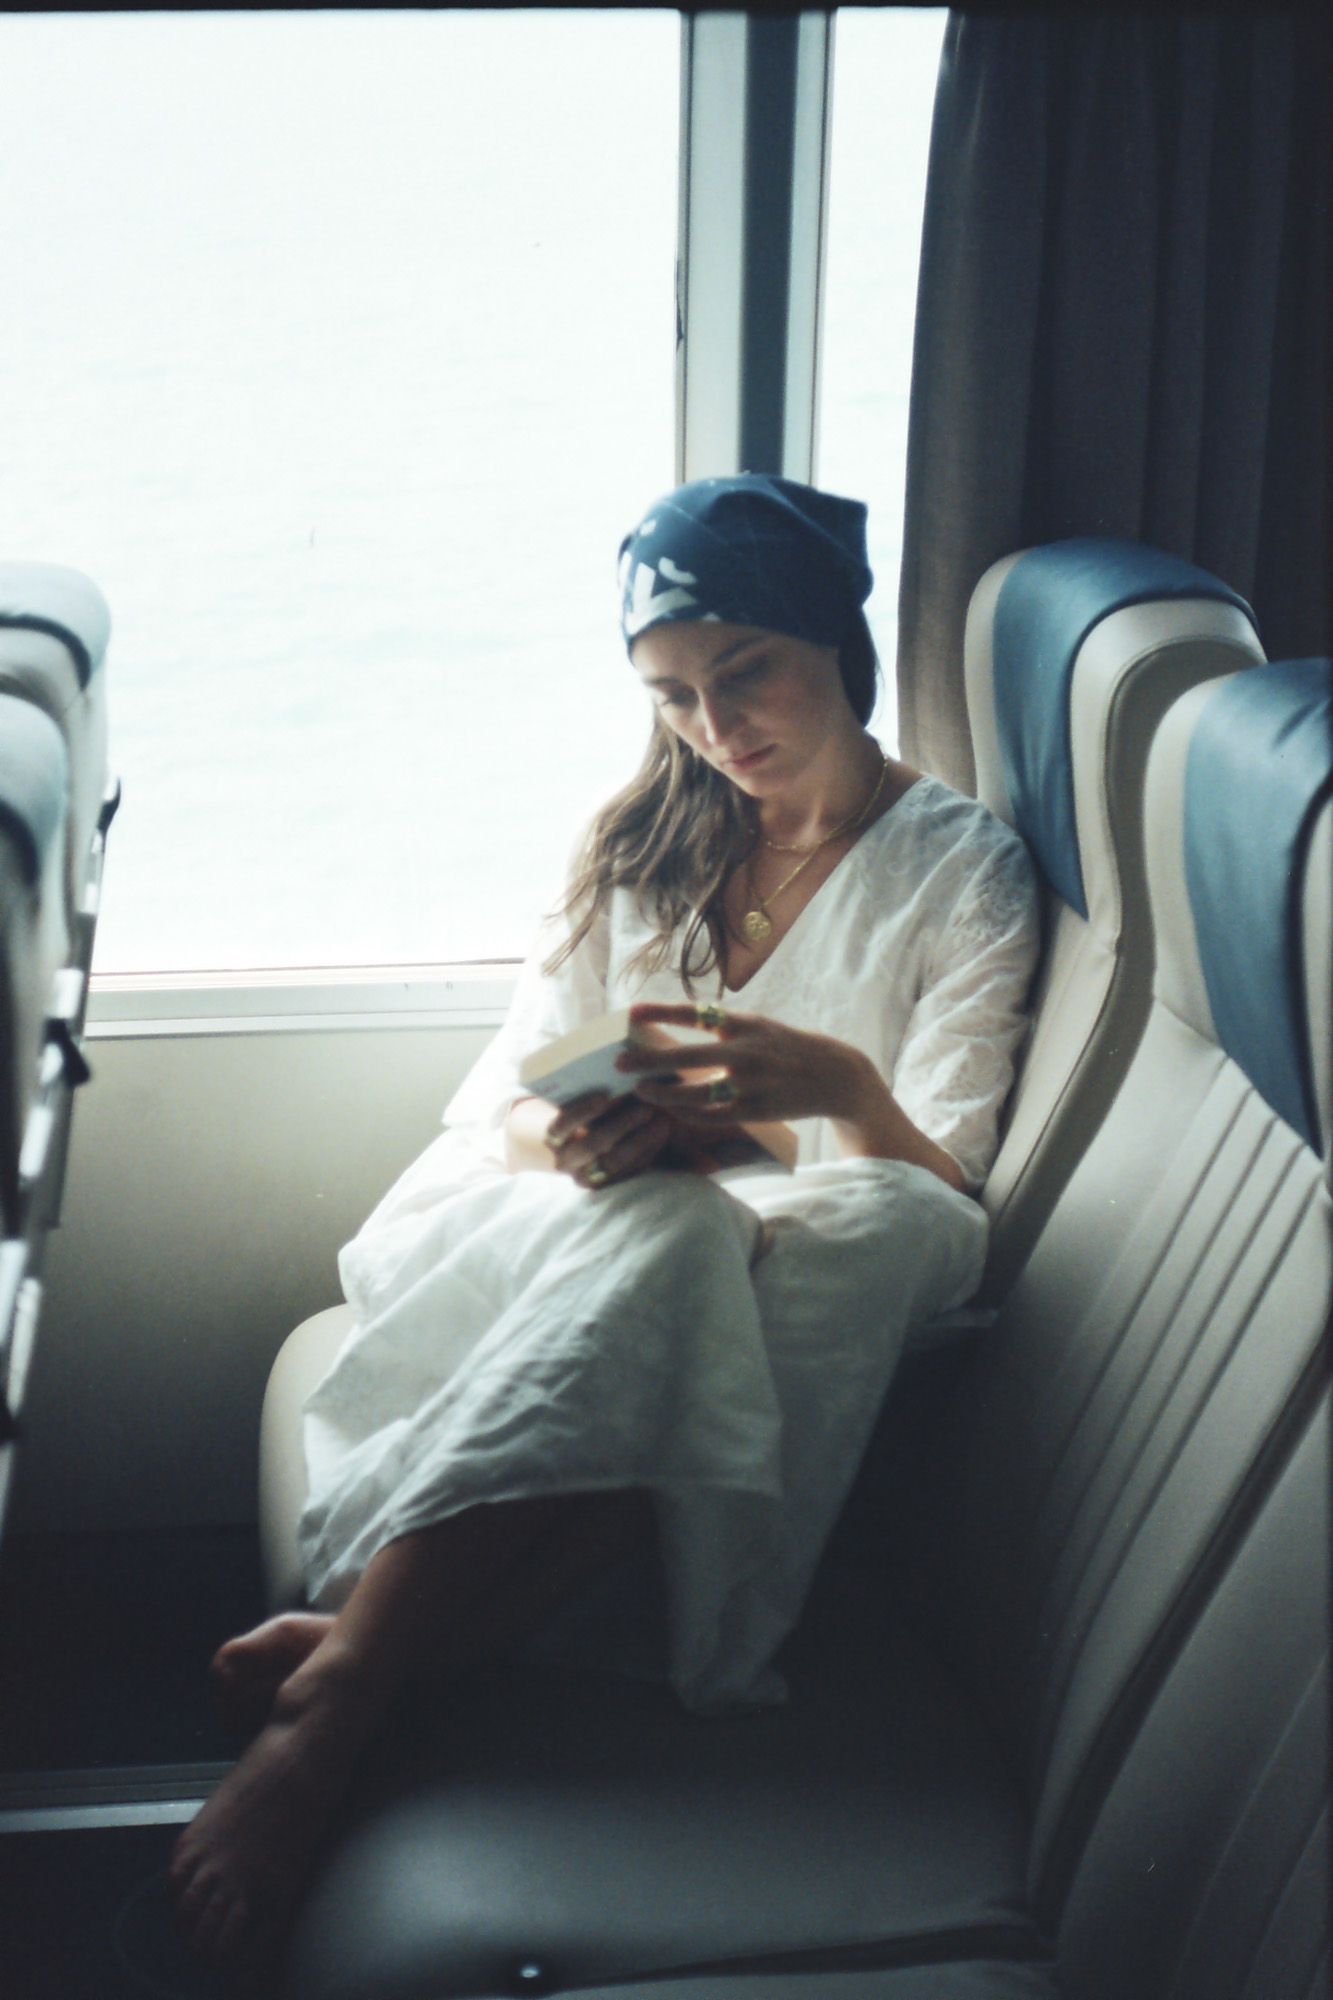 A woman wearing a white dress reading a book on a ferry boat seat